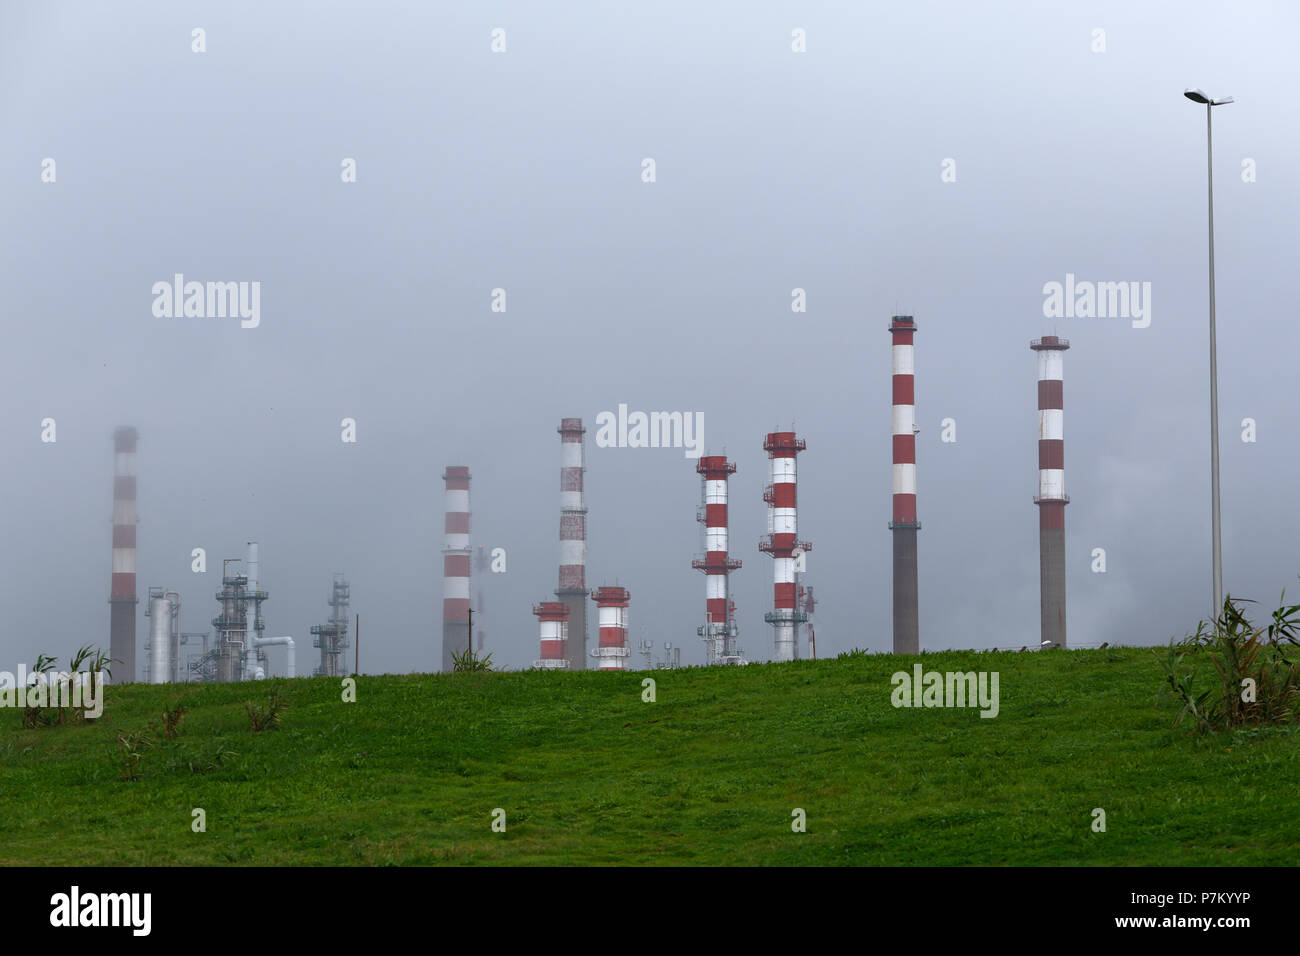 Oil refinery and powerplant chimneys between smog - Stock Image